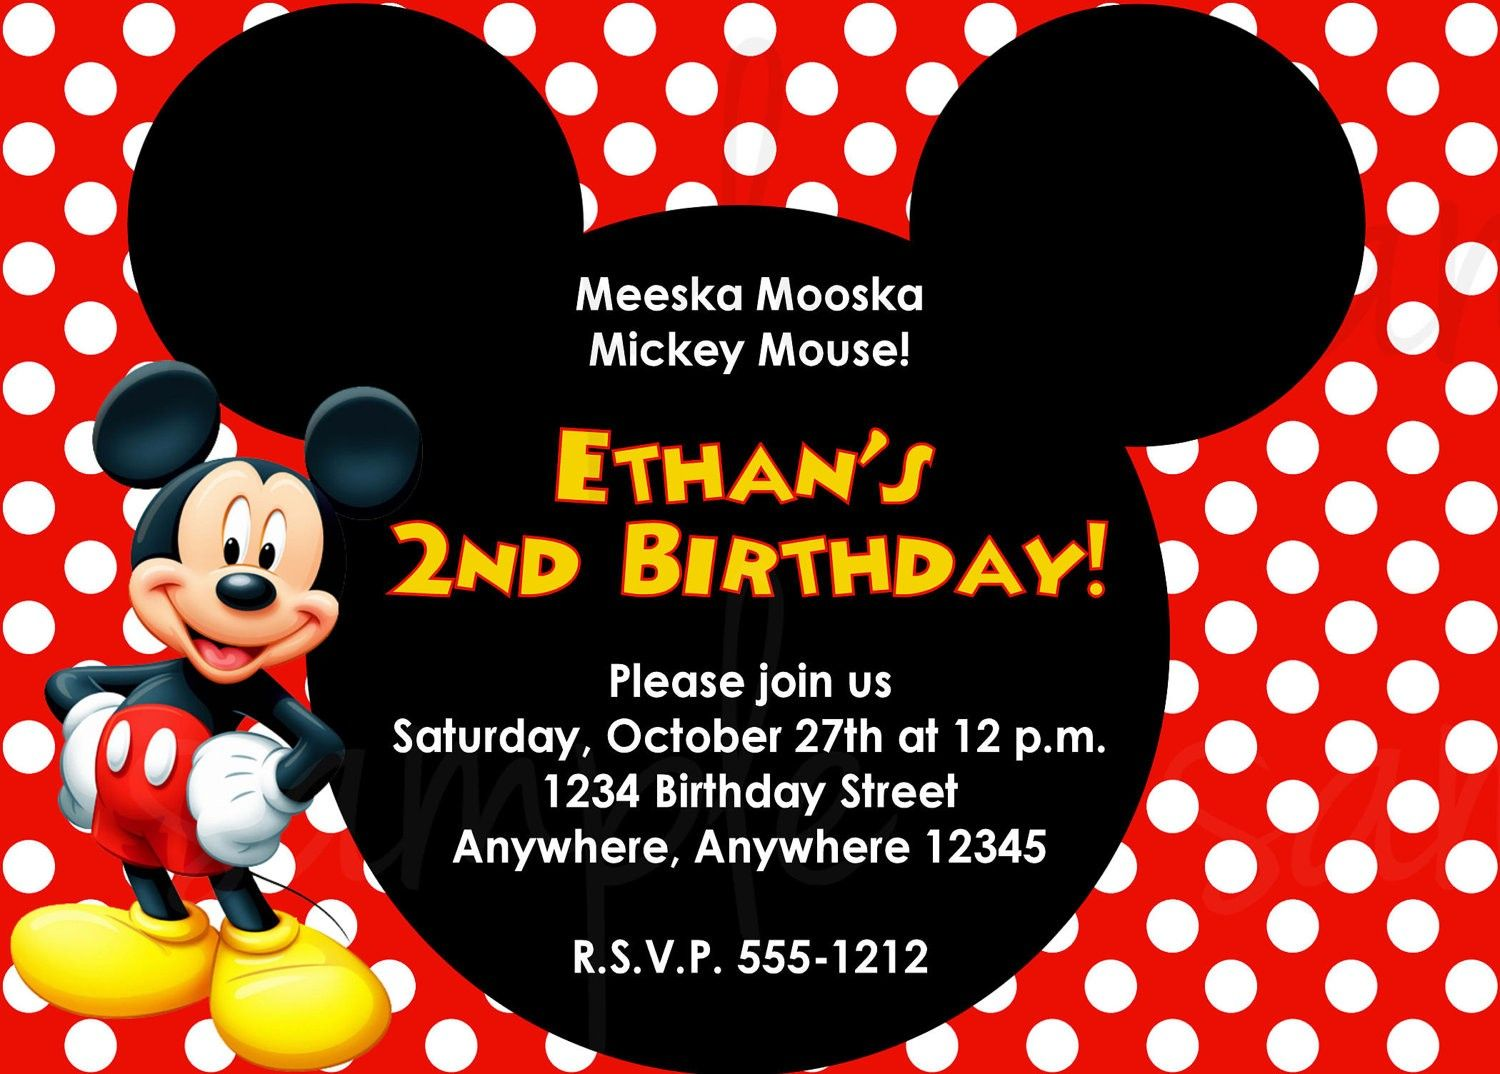 Mickey Mouse Birthday Invitations Free | Chiquitines | Pinterest ...